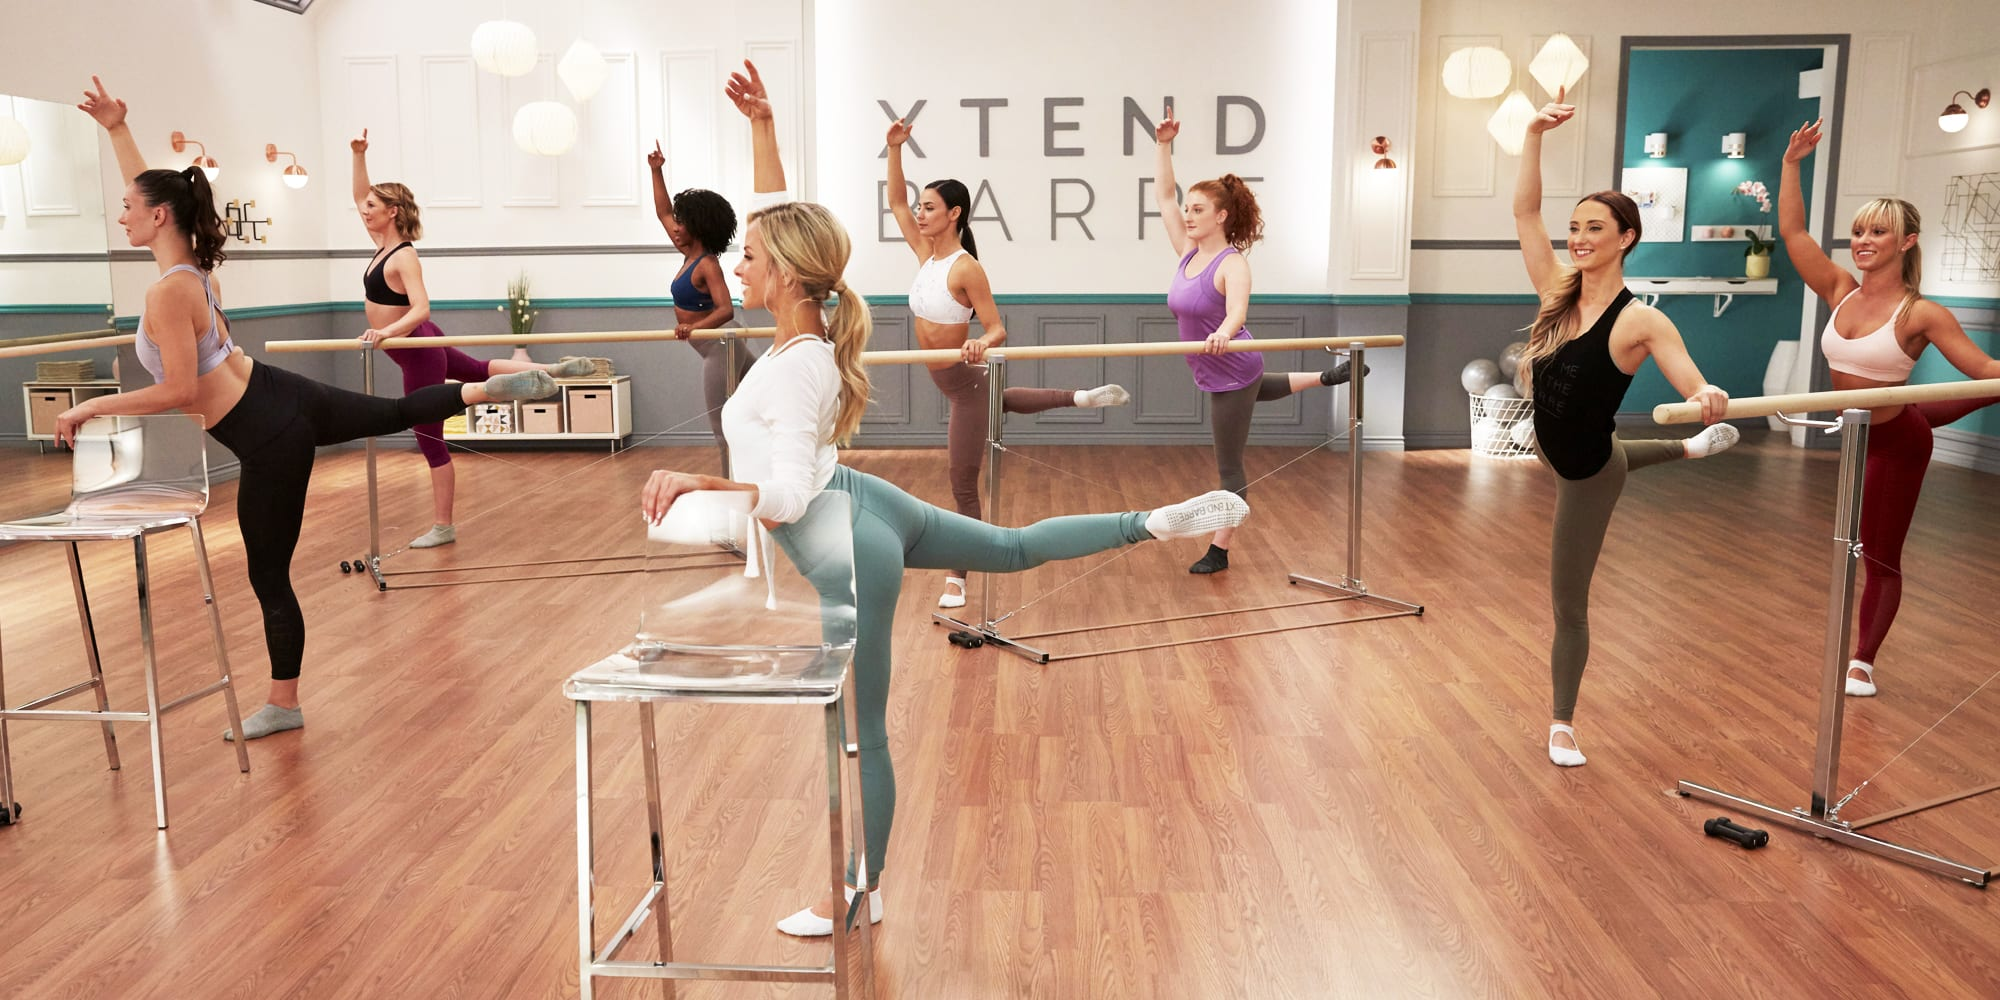 How to Try Xtend Barre for Free, AND Get Exclusive Support From Andrea Rogers!